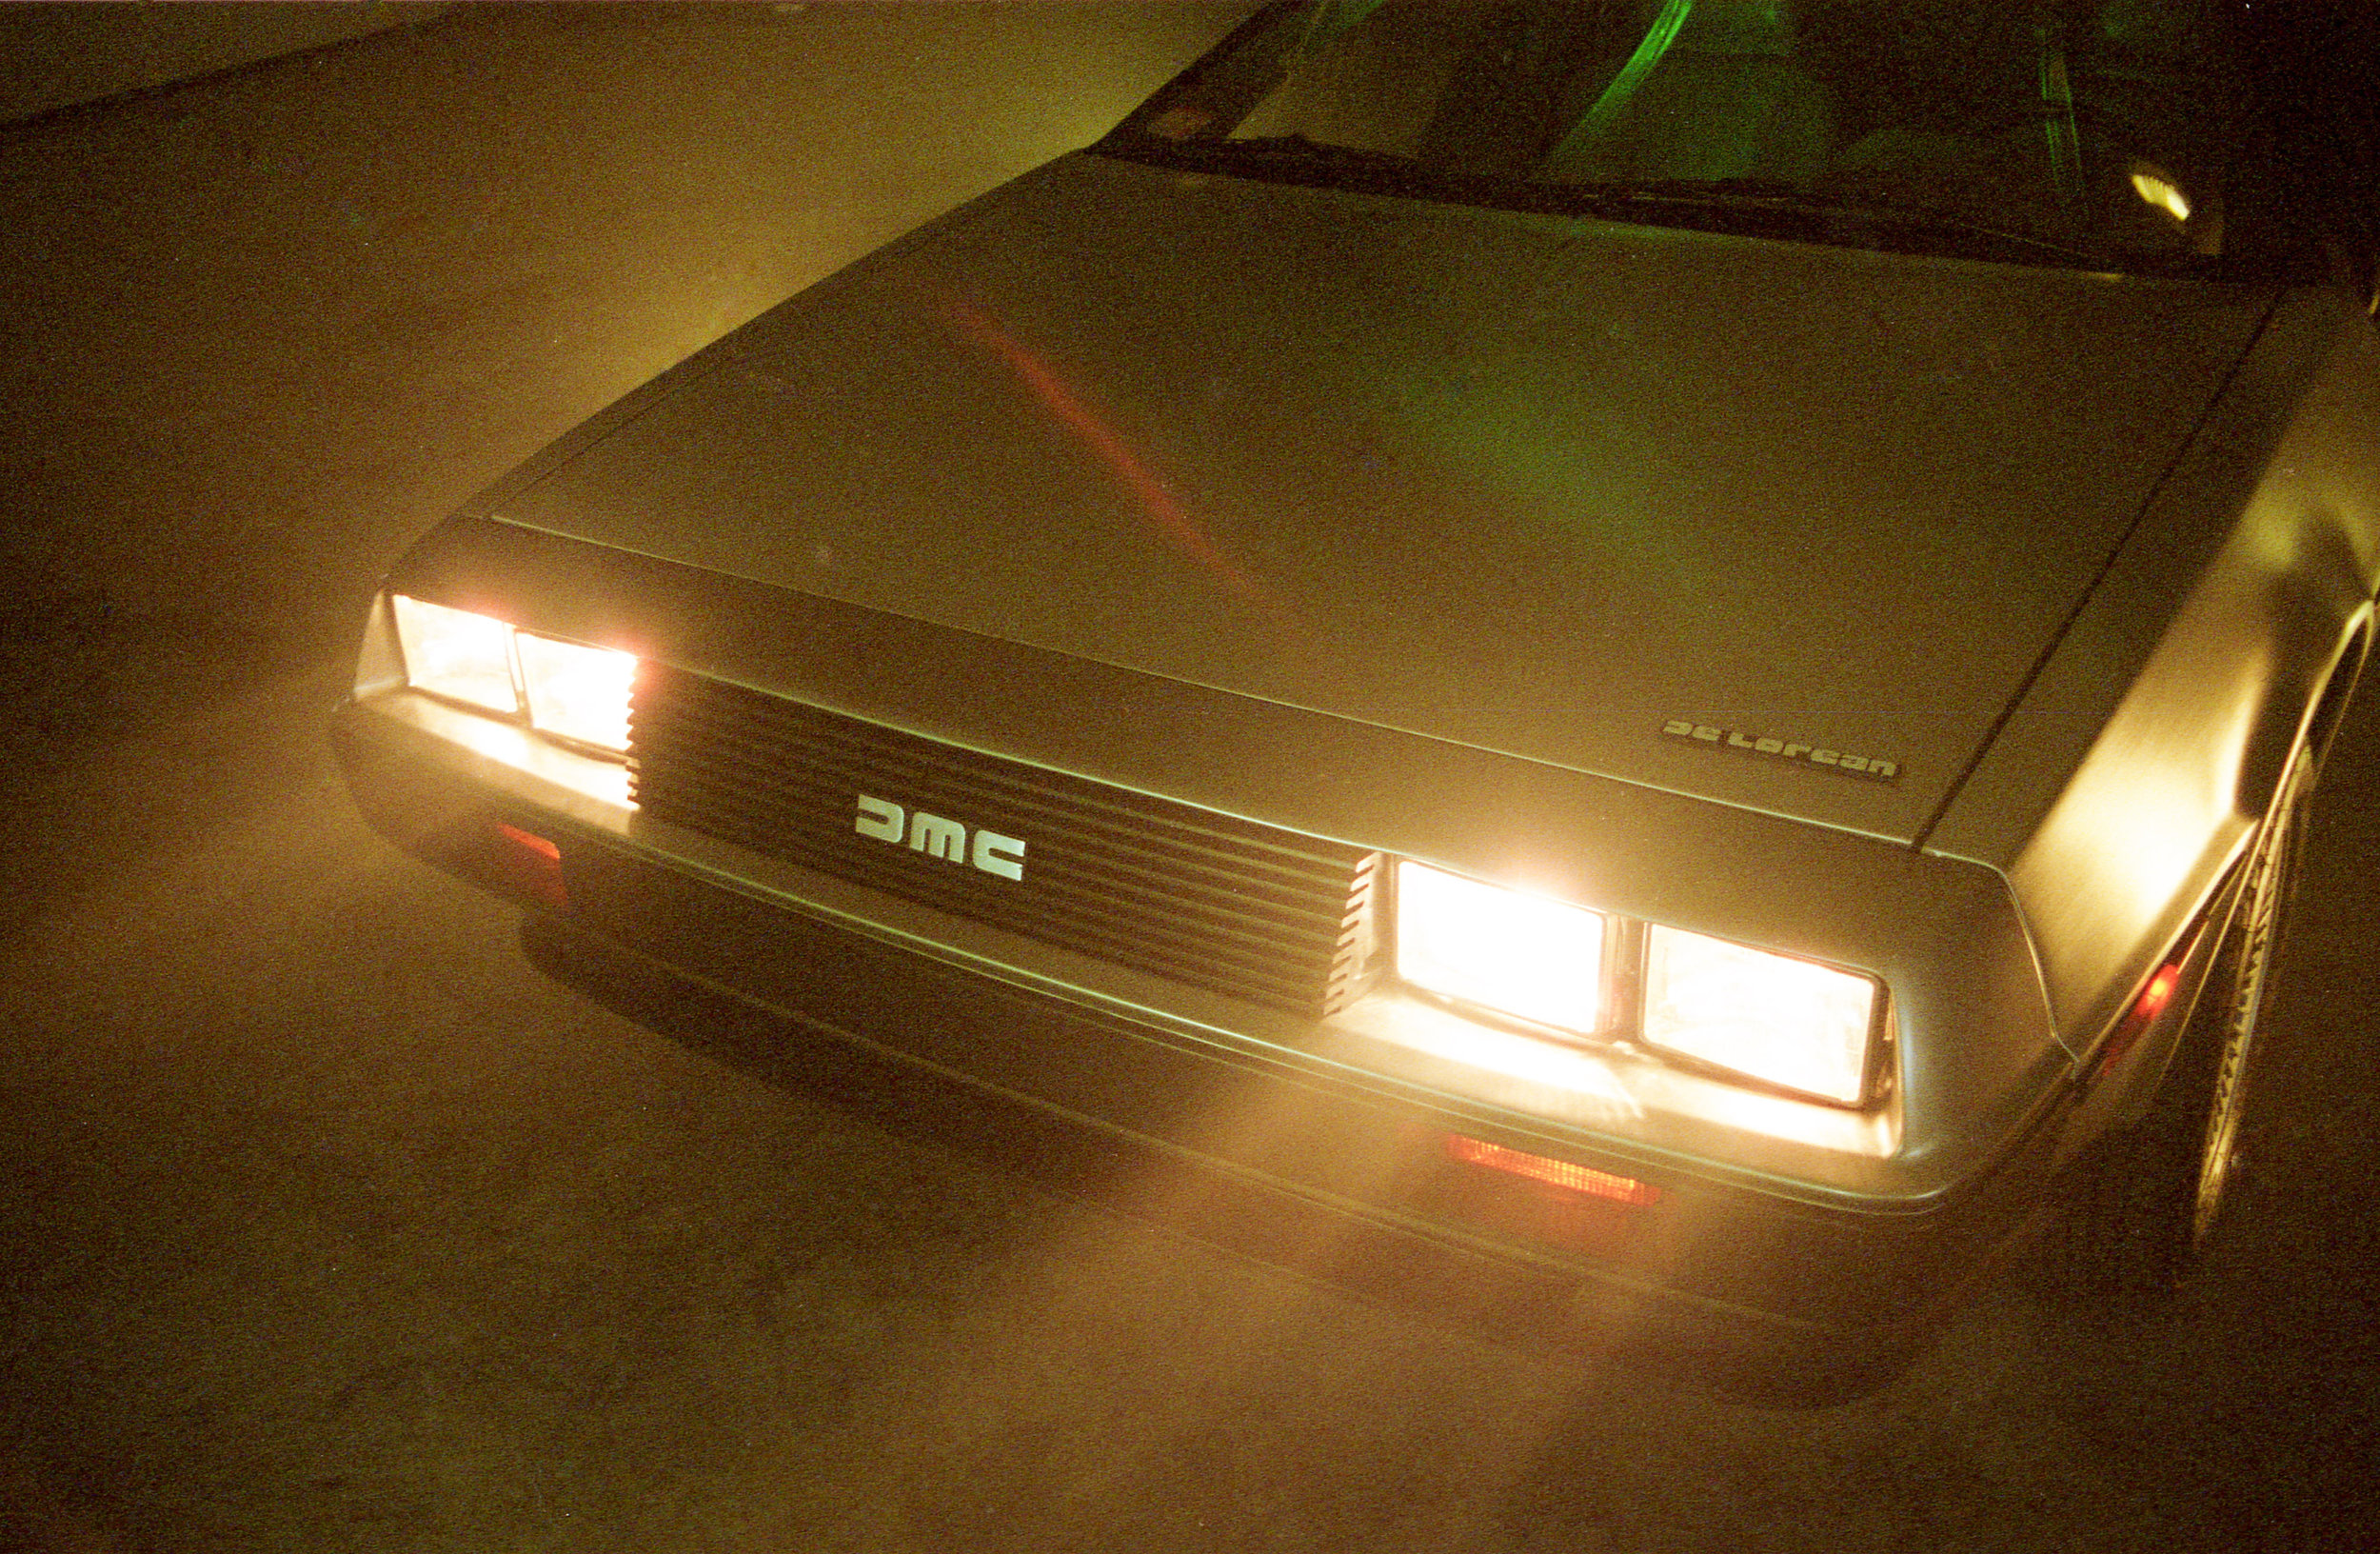 delorean-fog-film-19.jpg